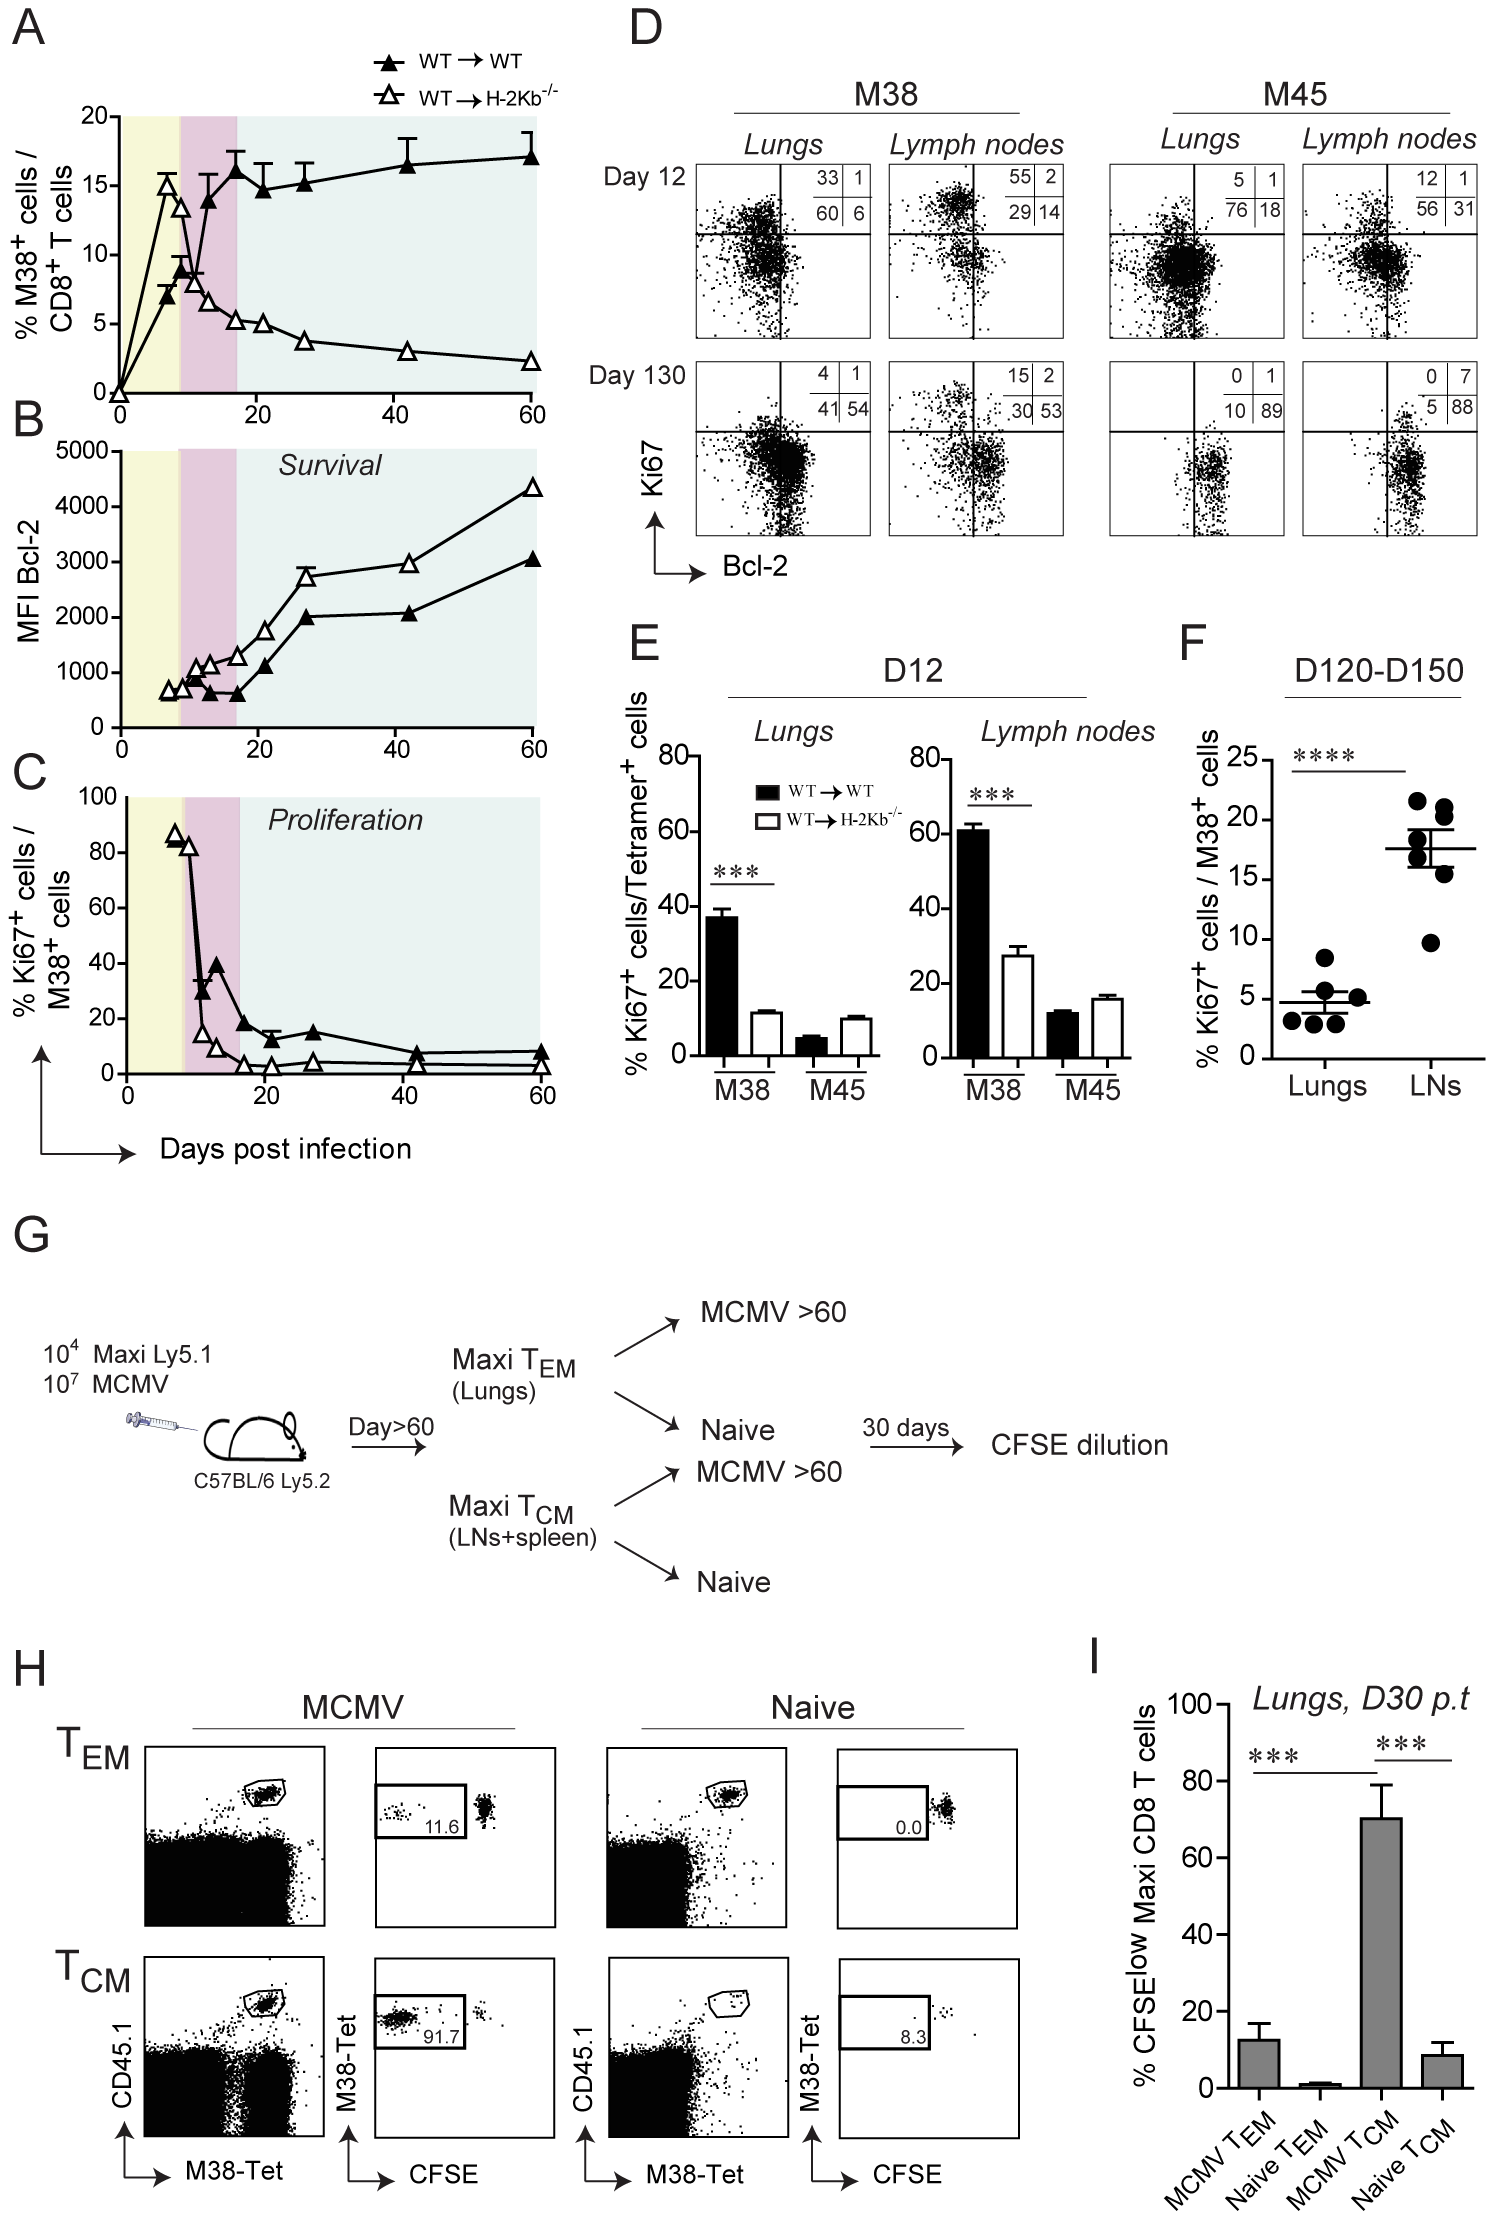 Non-hematopoietic cells promote extensive and systemic cell proliferation in the early phase of MCMV infection, but only local during latency.